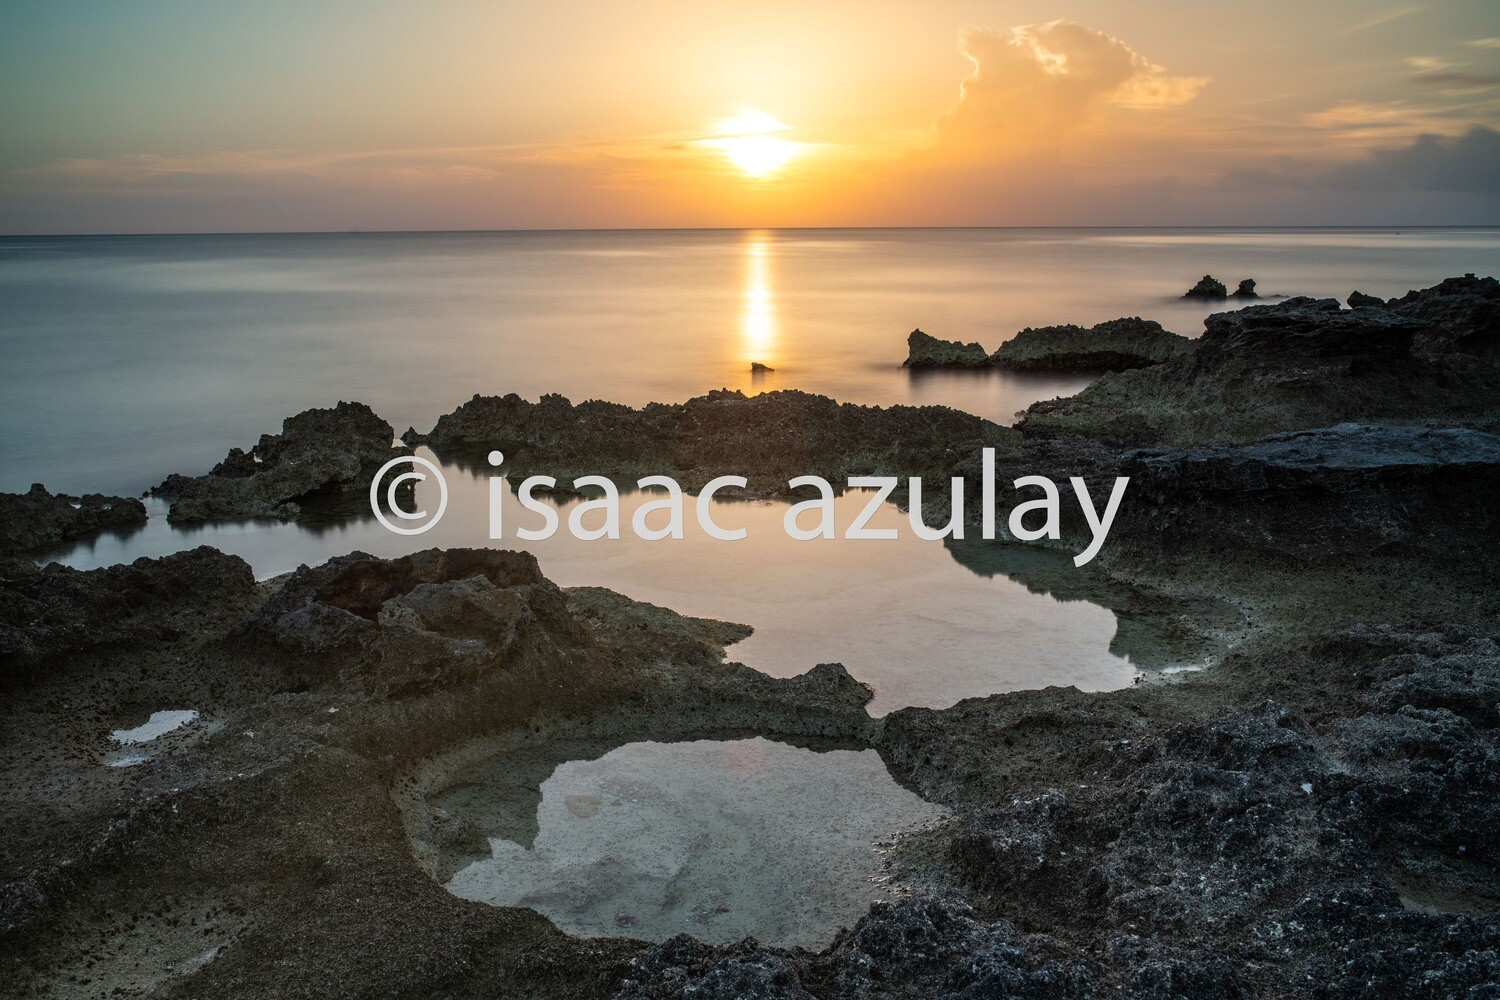 A Cayman's sunset